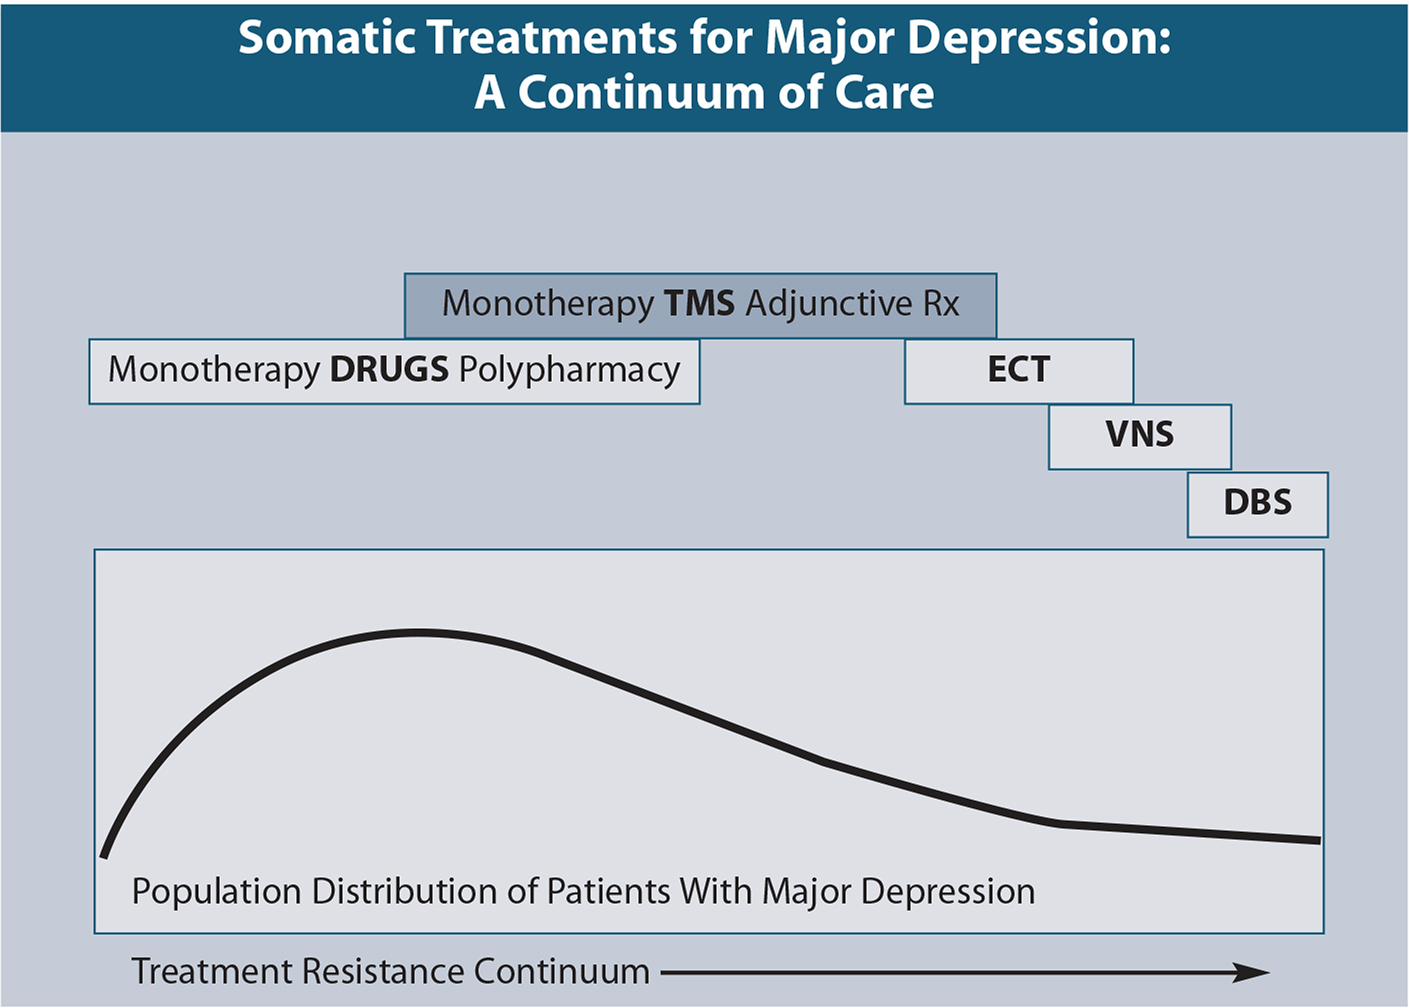 A continuum of care for treatment planning for major depression.